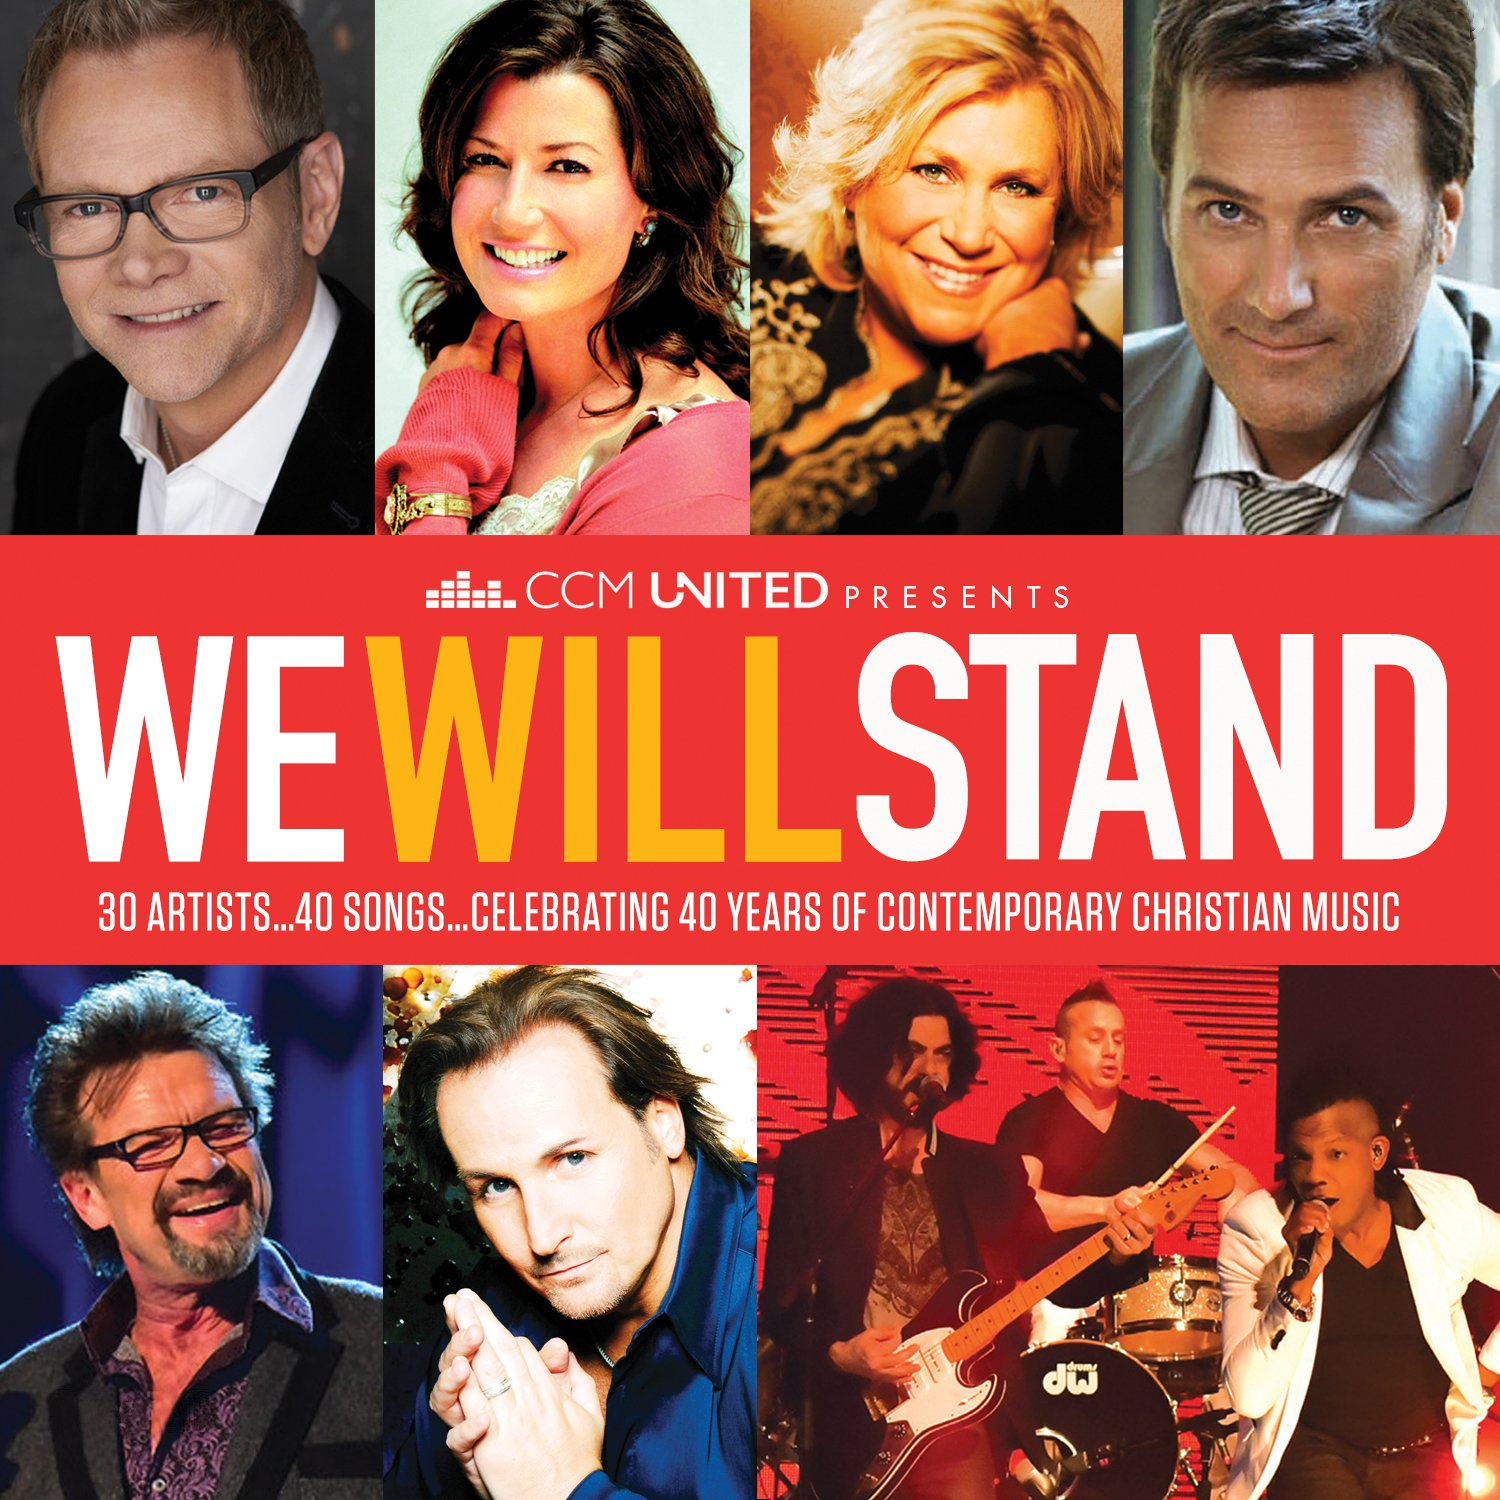 We Will Stand [2 CD]